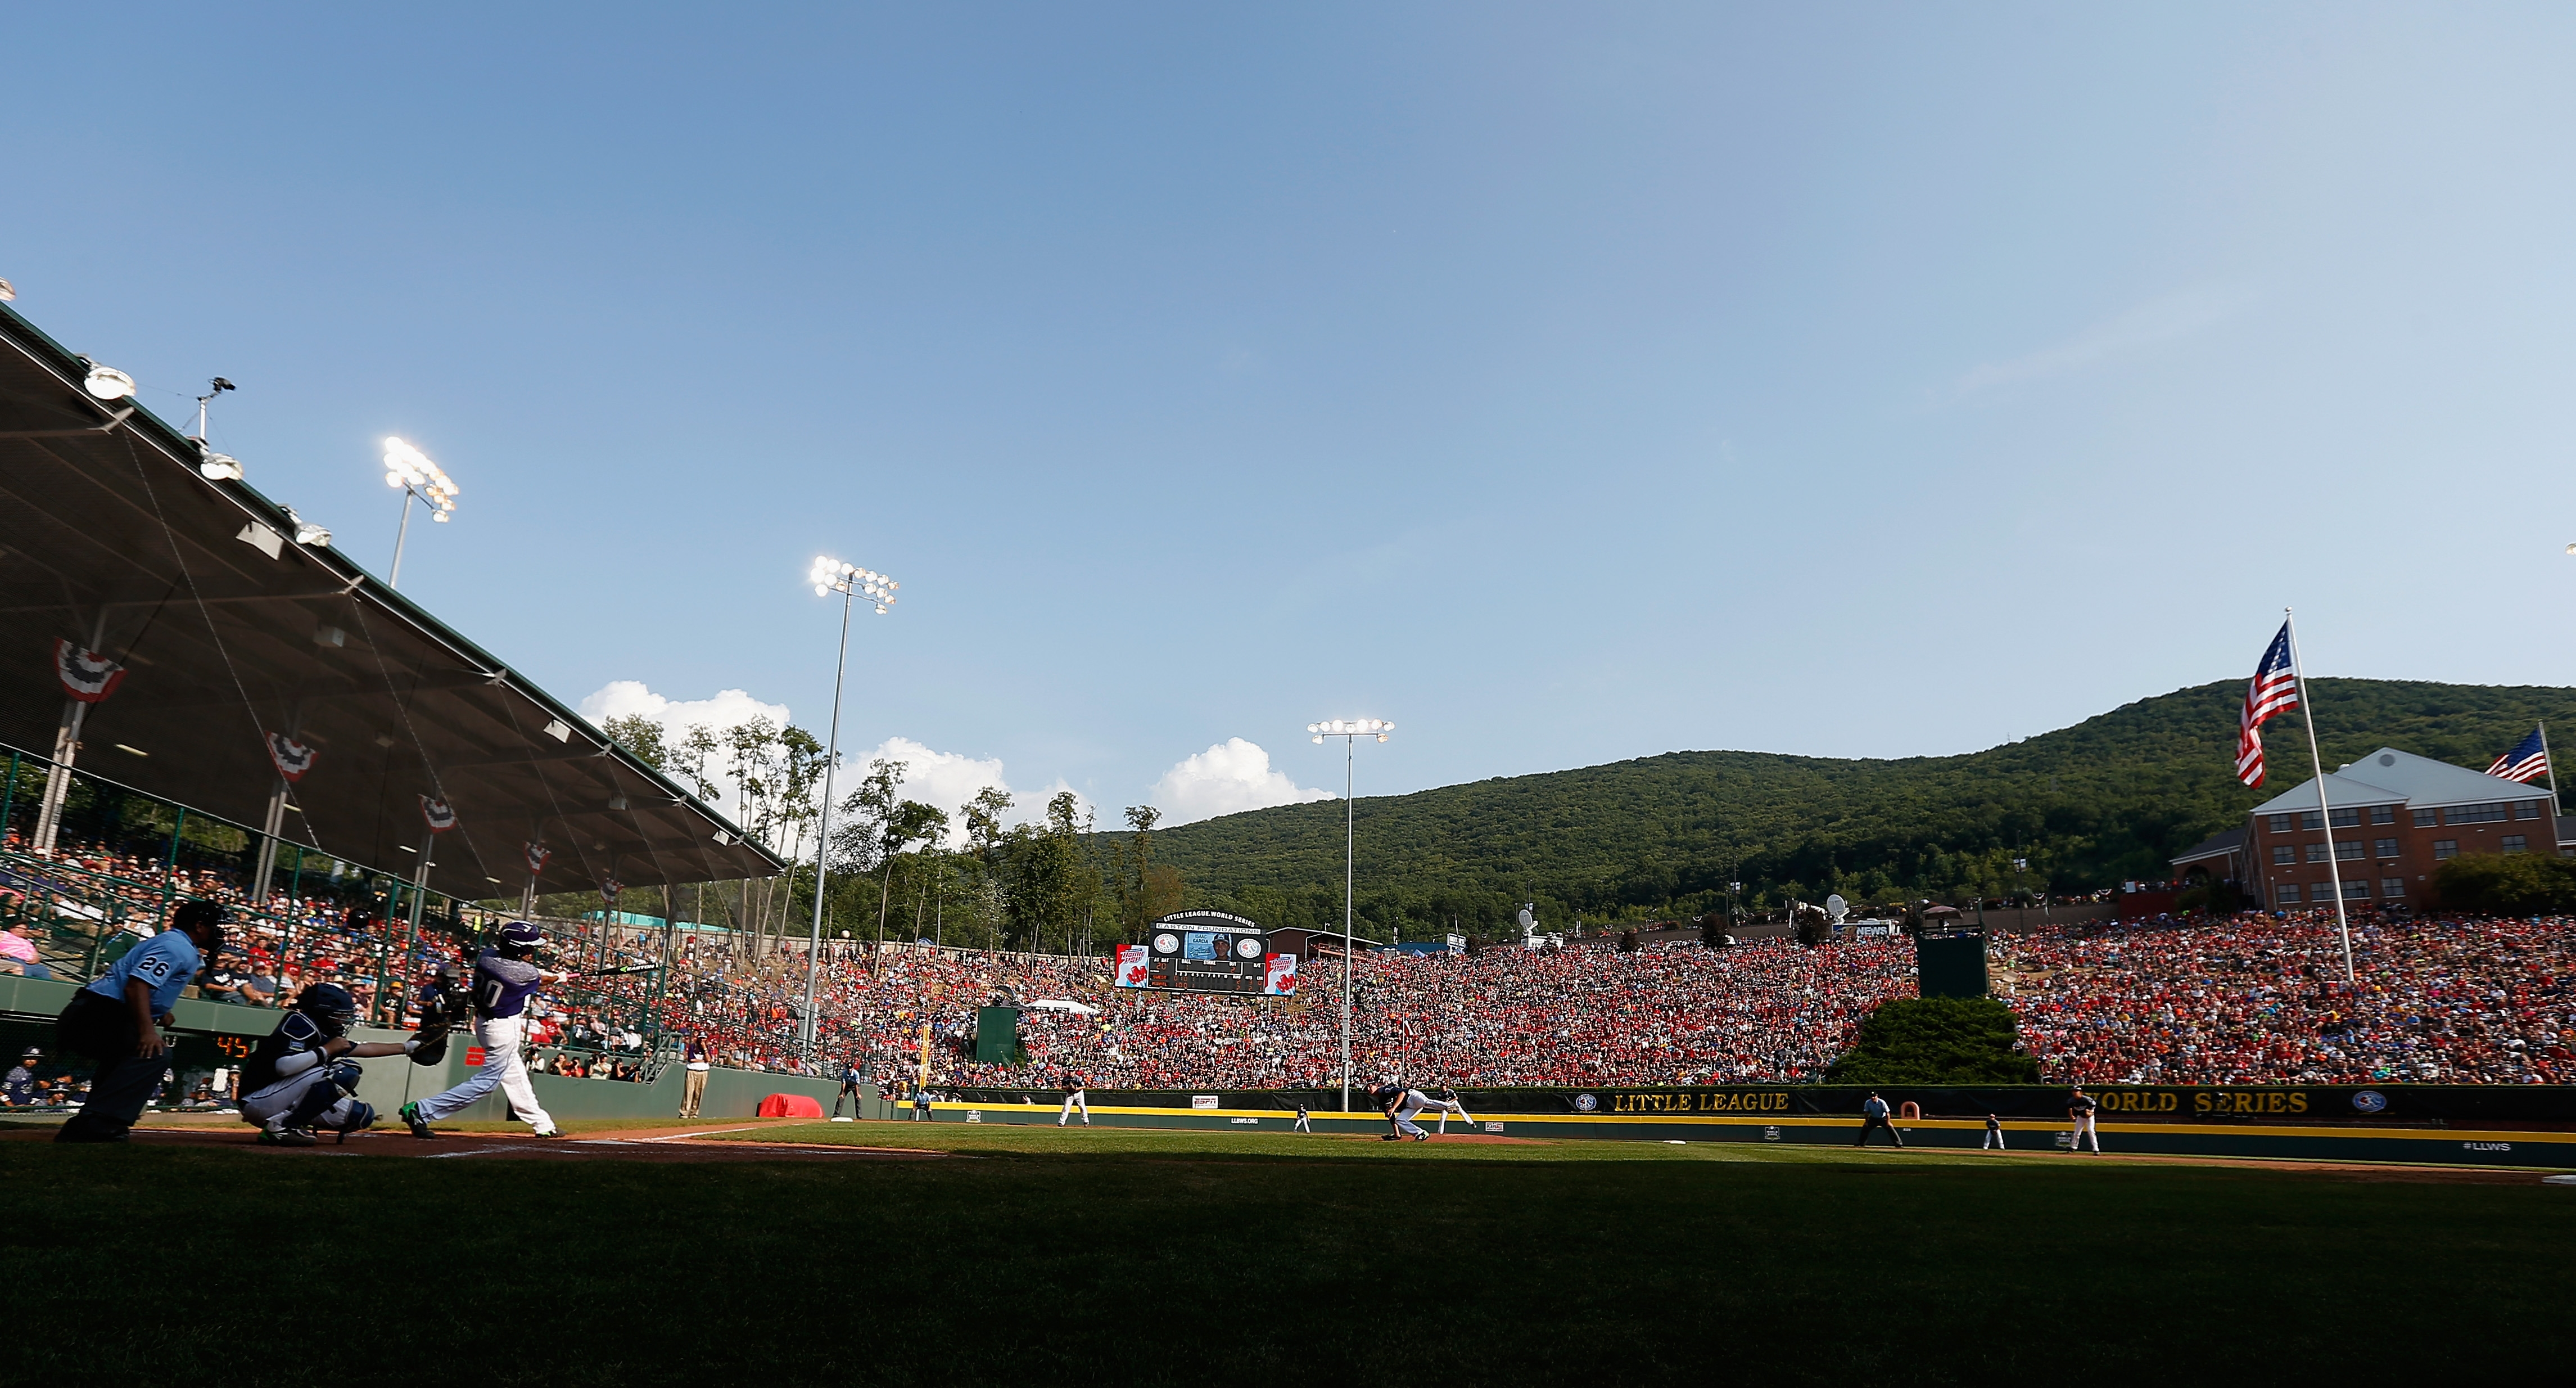 The age limit for the Little League World Series in Williamsport, Pa. is 12.